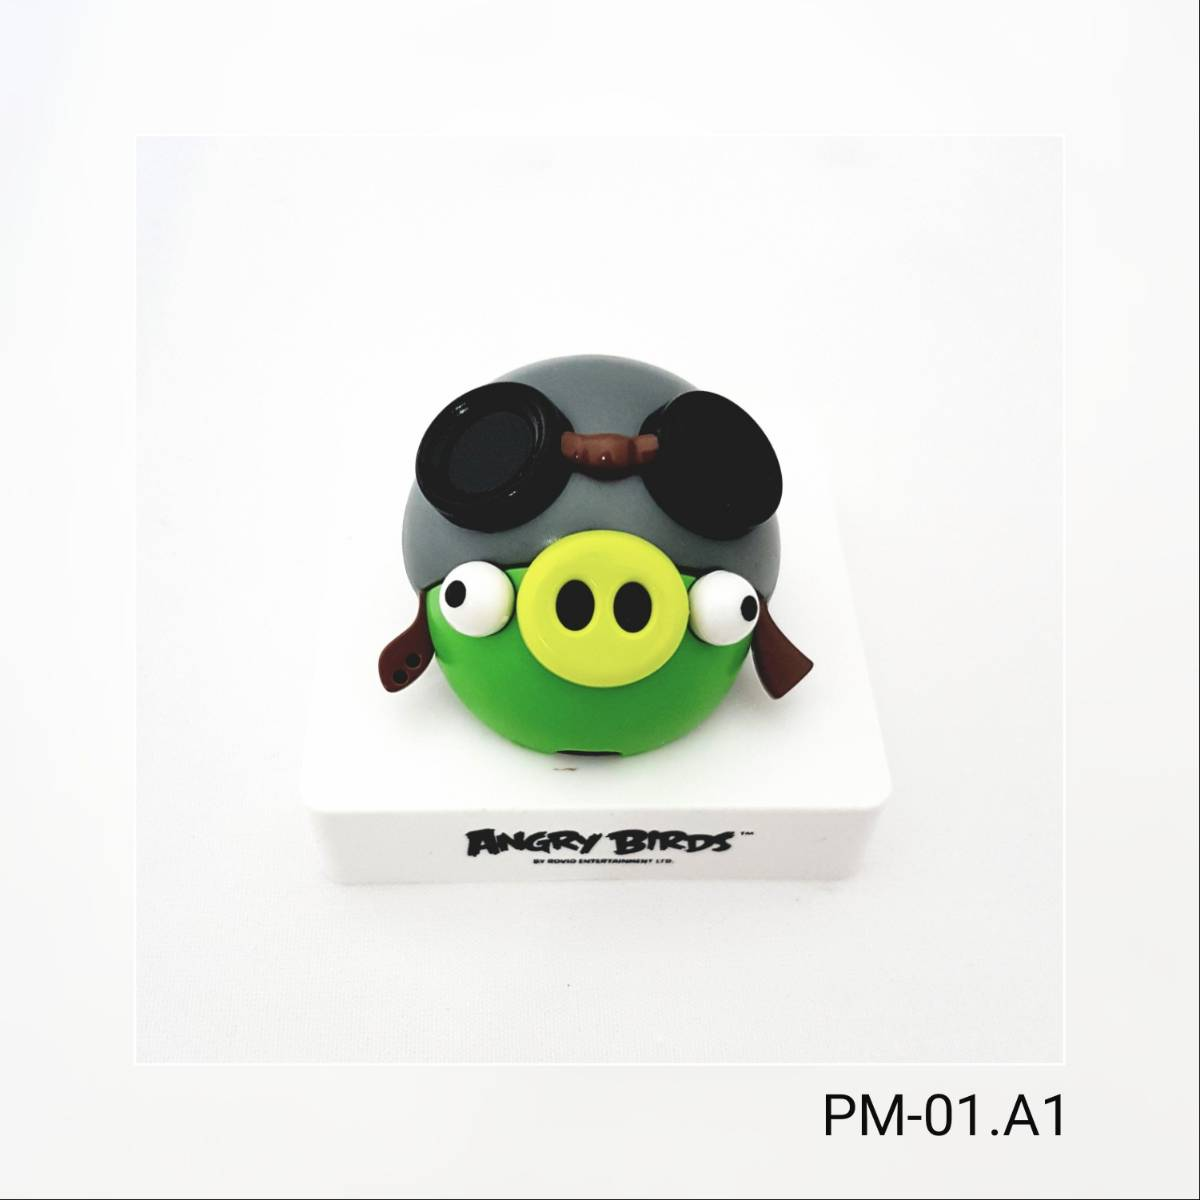 Parfum Mobil Angry Birds Collection Pm-001/a1